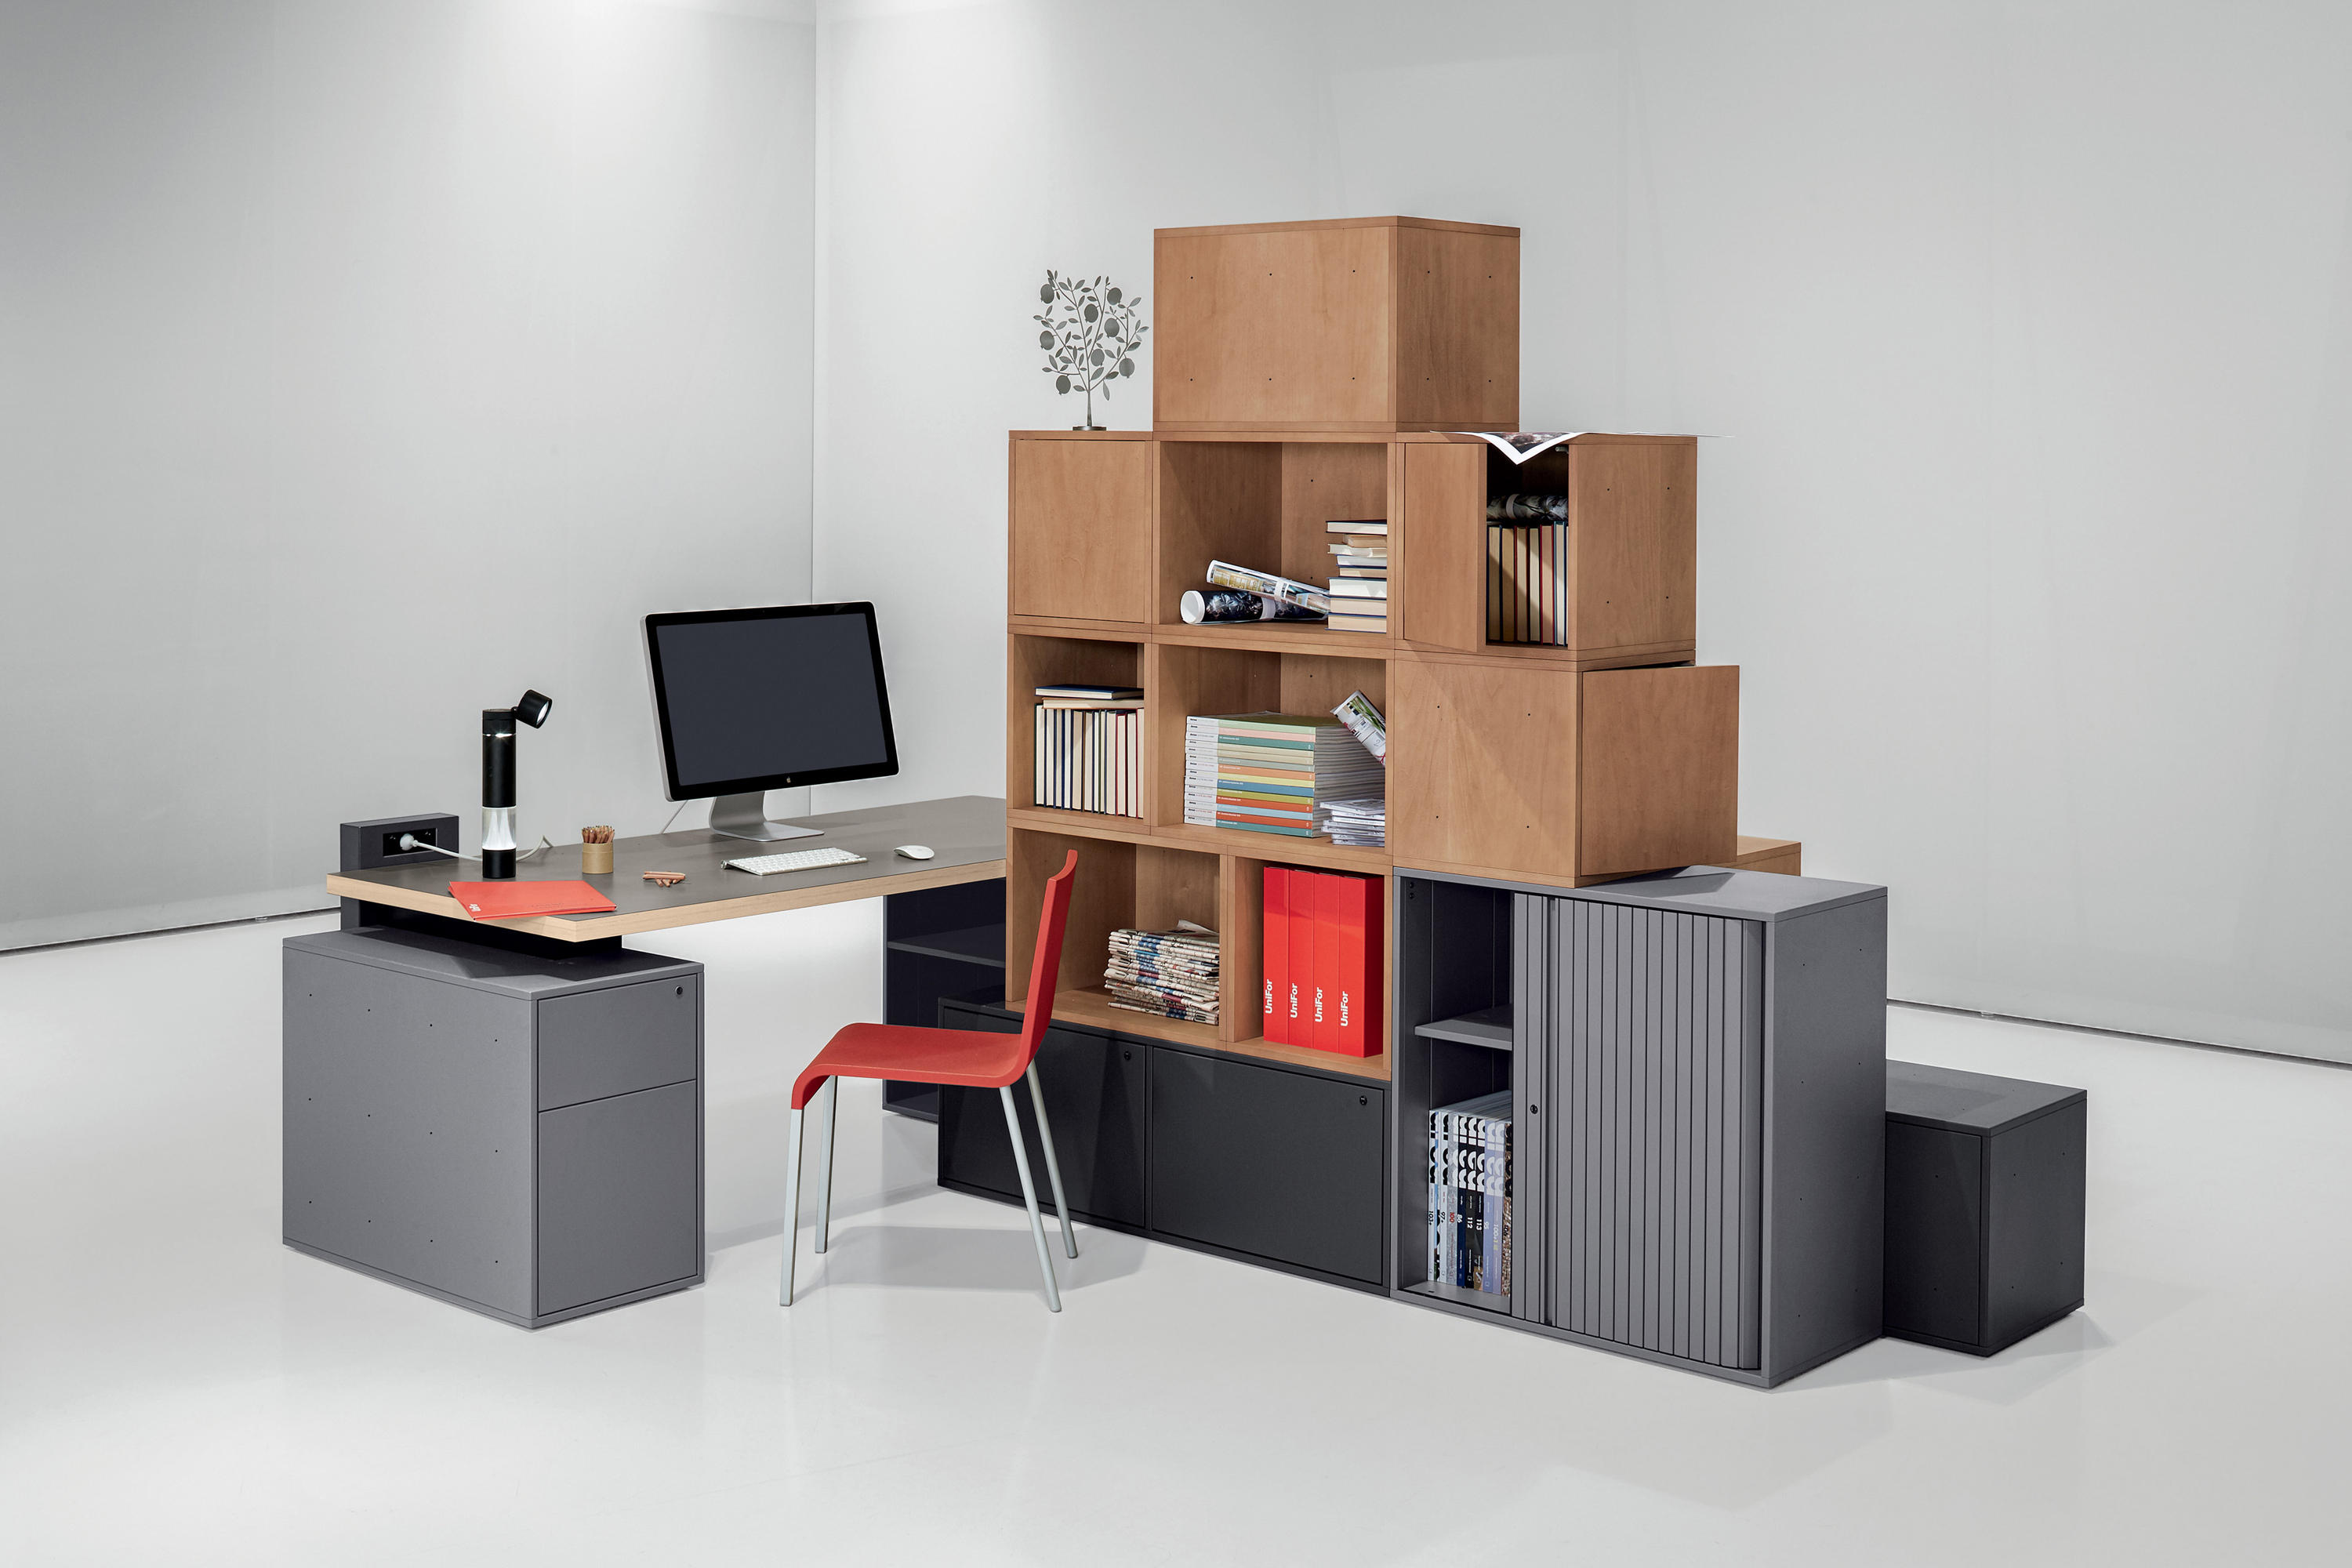 Sistema cases shelving from unifor architonic for Unifor turate